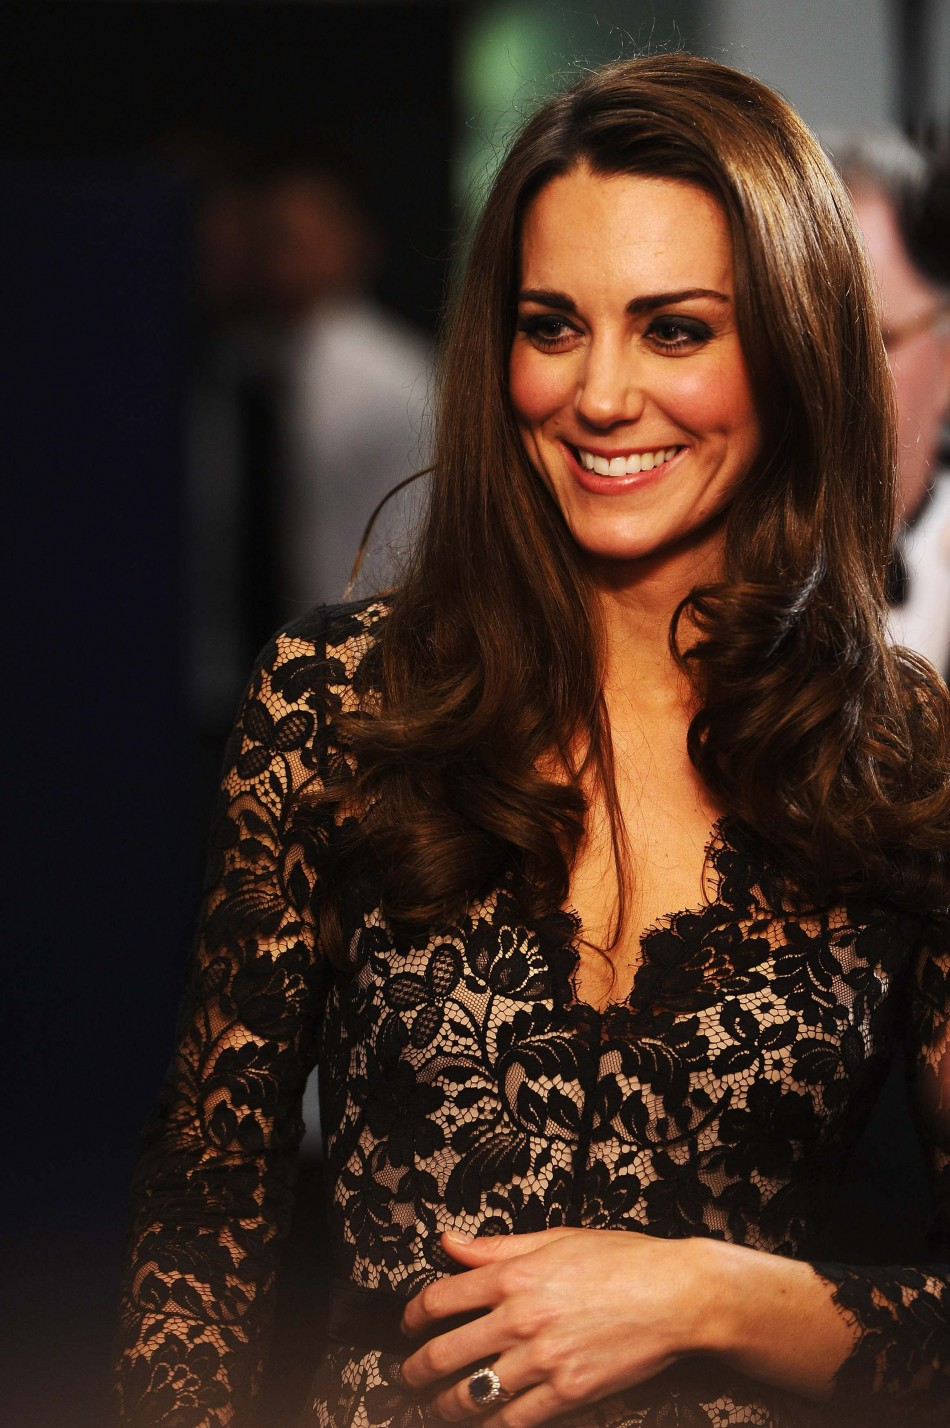 Catherine, Duchess of Cambridge attends the UK premiere of War Horse on the eve of her 30th birthday, at the Odeon Leicester Square cinema in London January 8, 2012 in London, England.  Kate sports her trademark glossy blow-dry hairdo. (Photo: REUTERS/Ian Gavan/POOL)